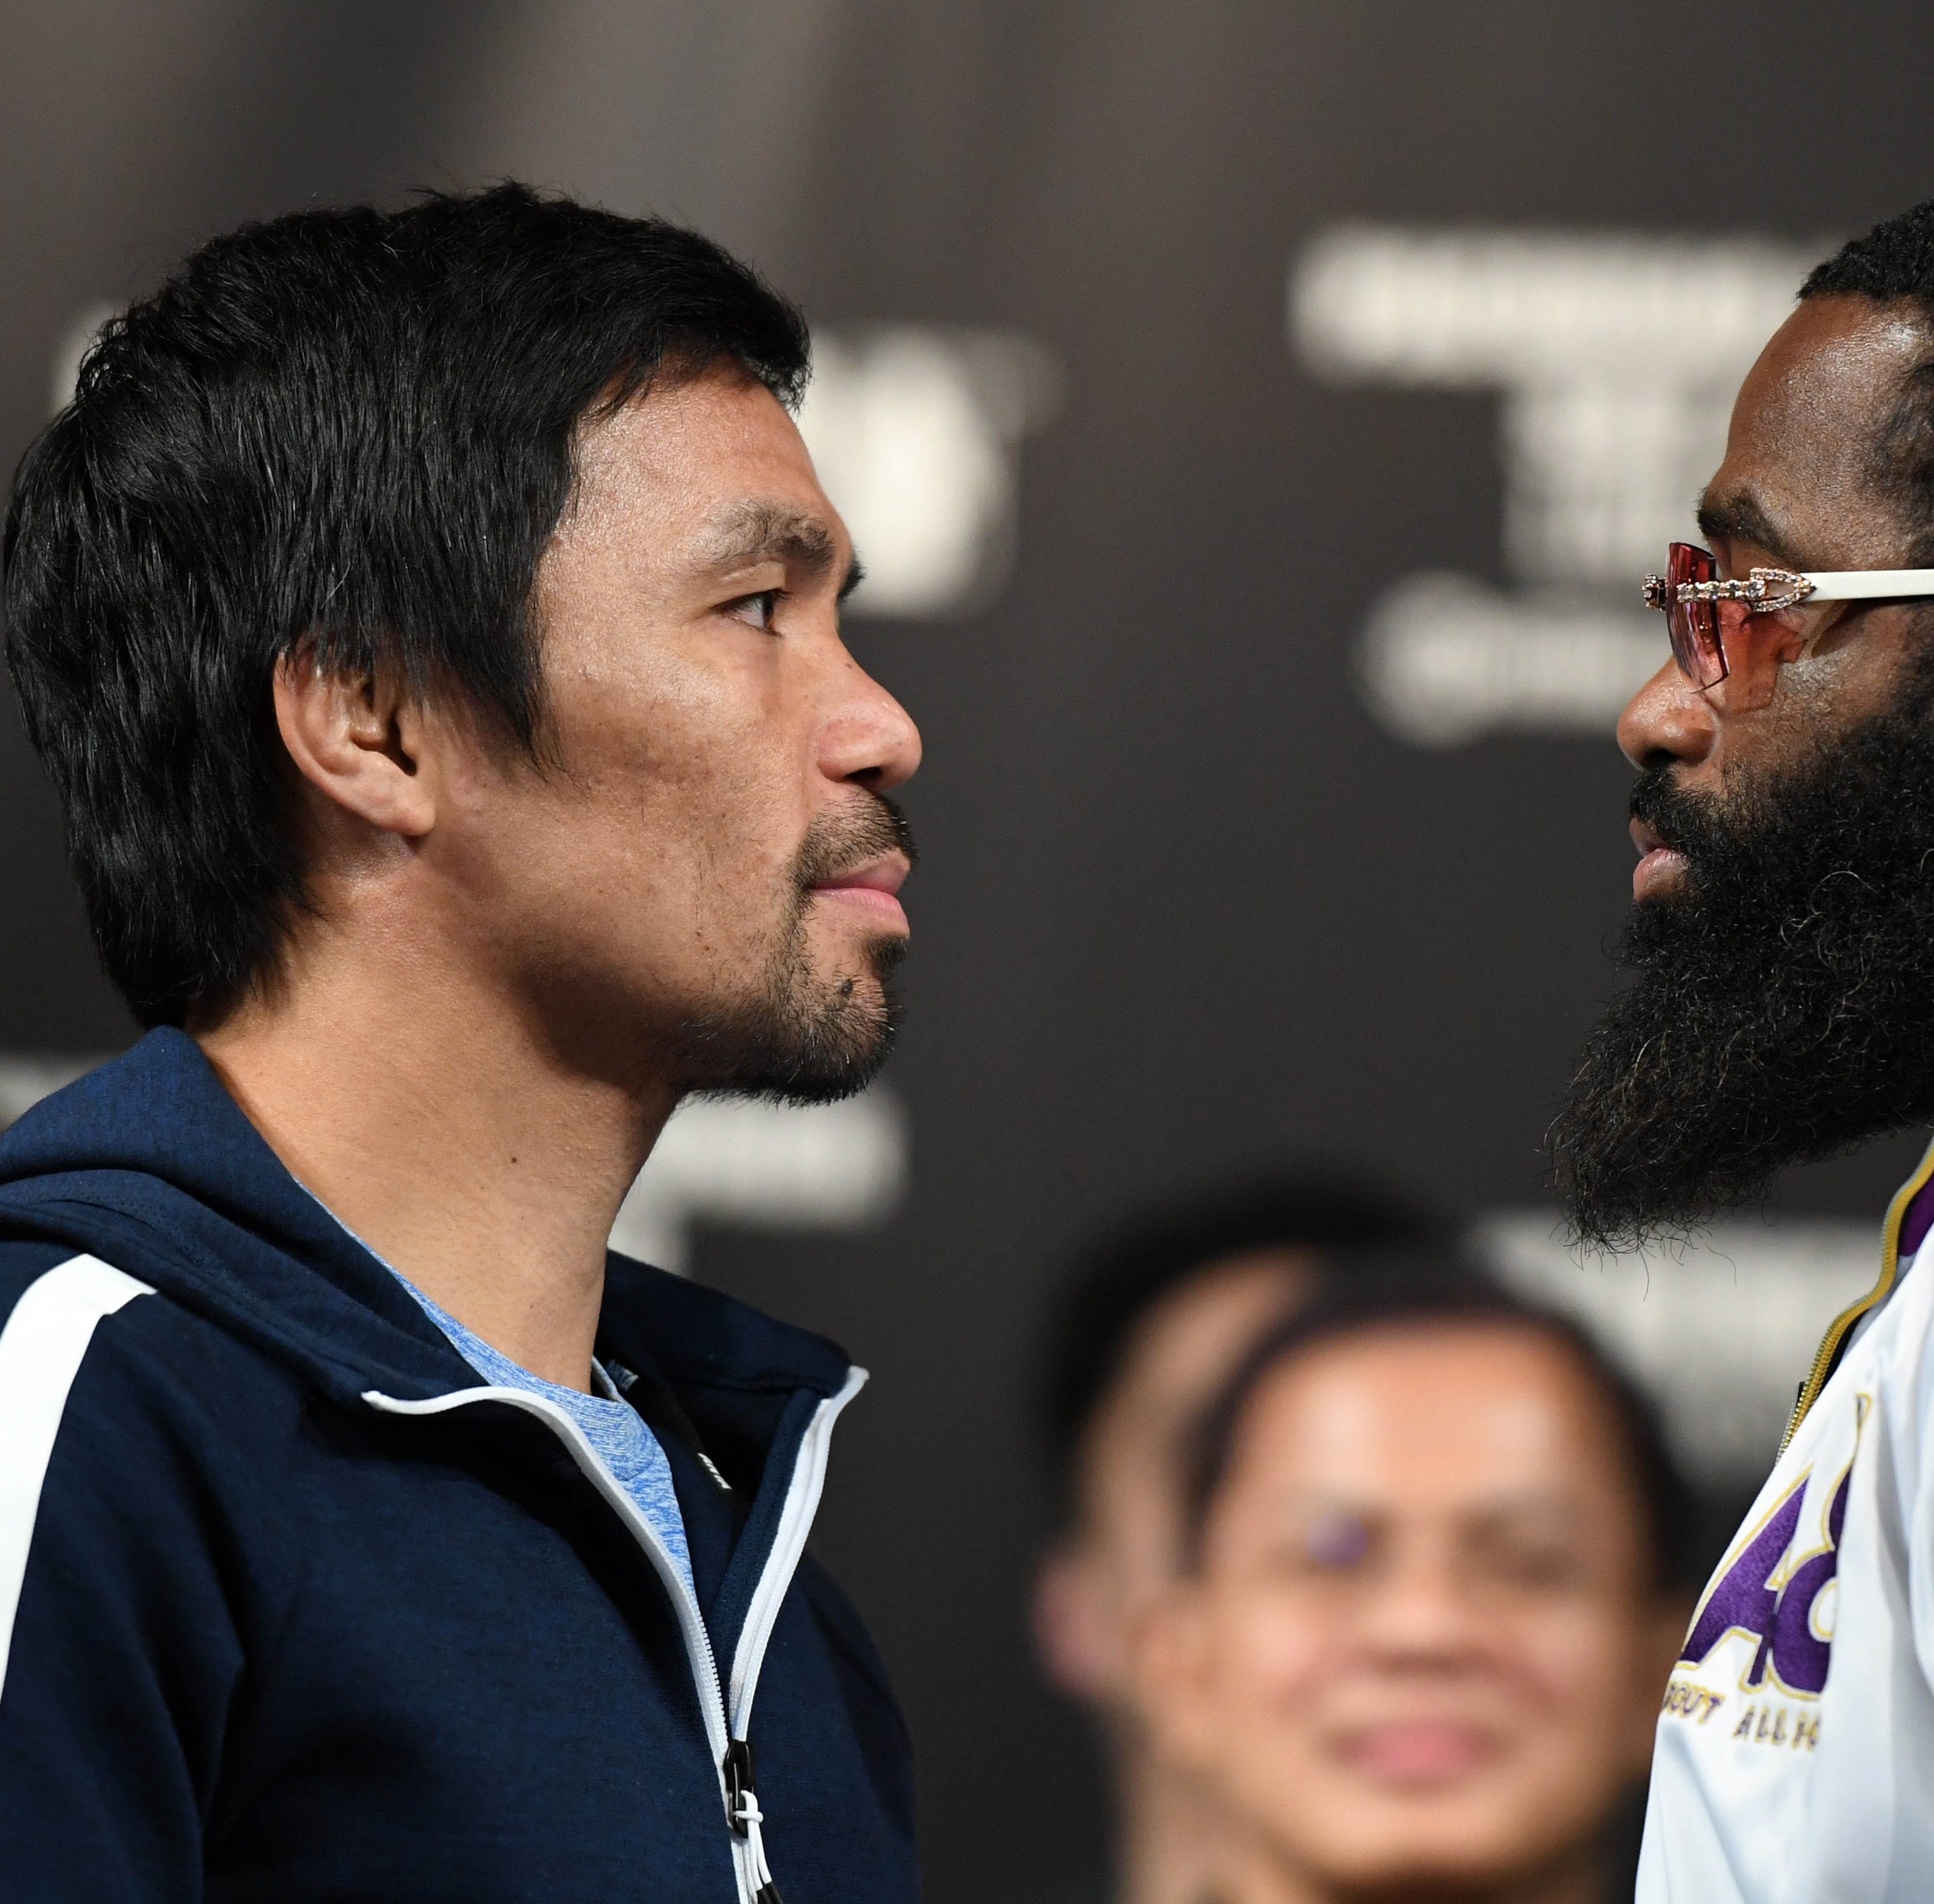 Manny Pacquiao will edge Adrien Broner, earn boxing rematch with Floyd Mayweather